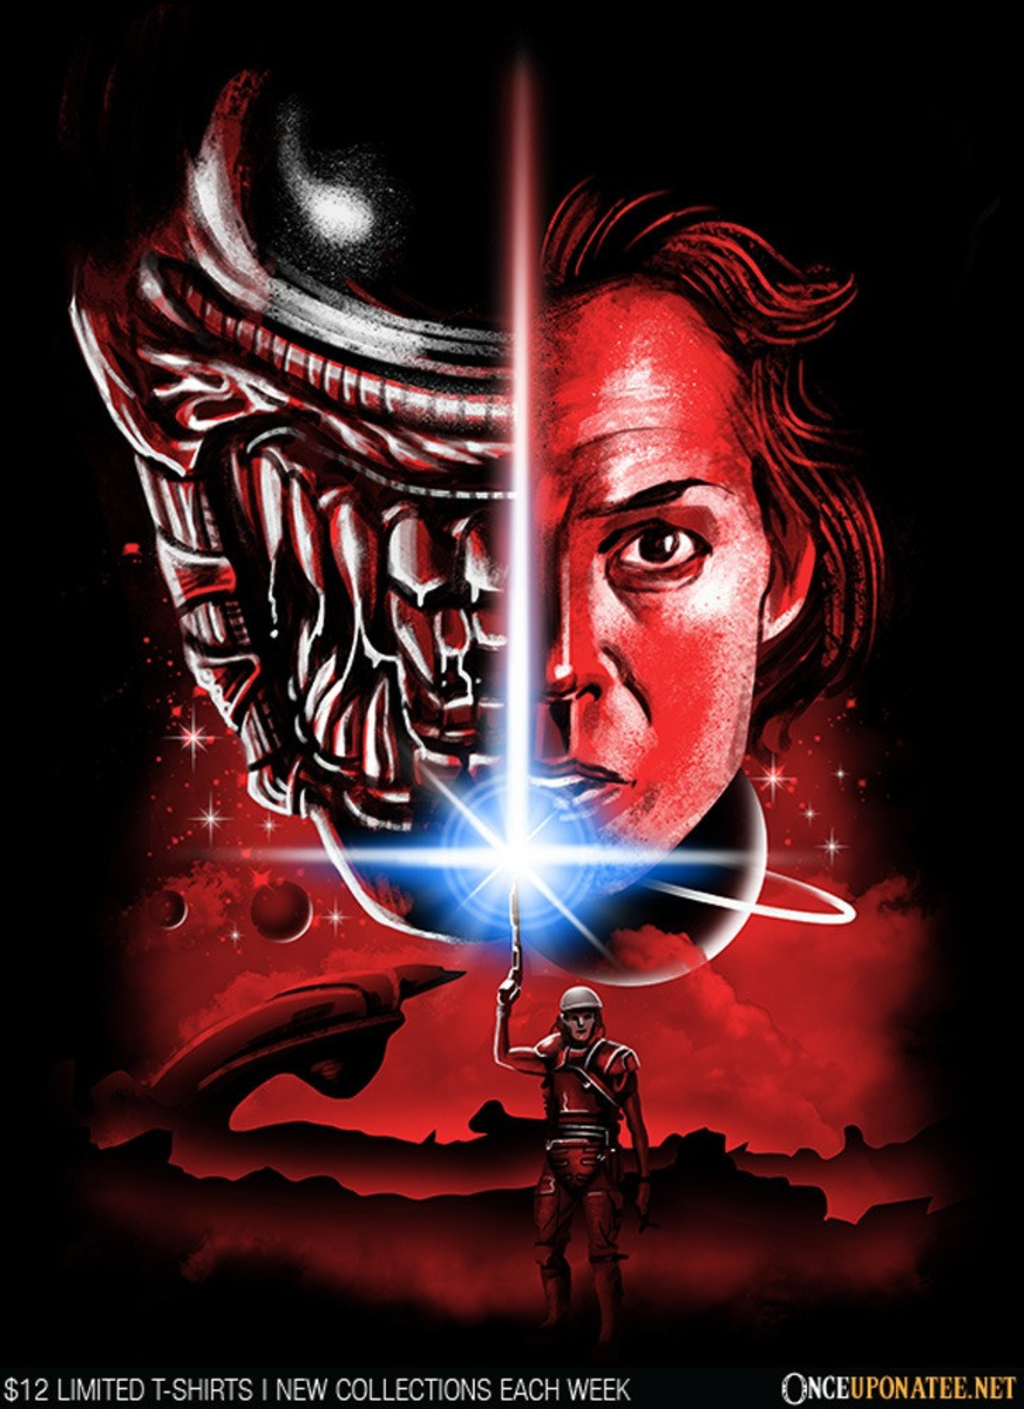 Once Upon a Tee: The Last Alien